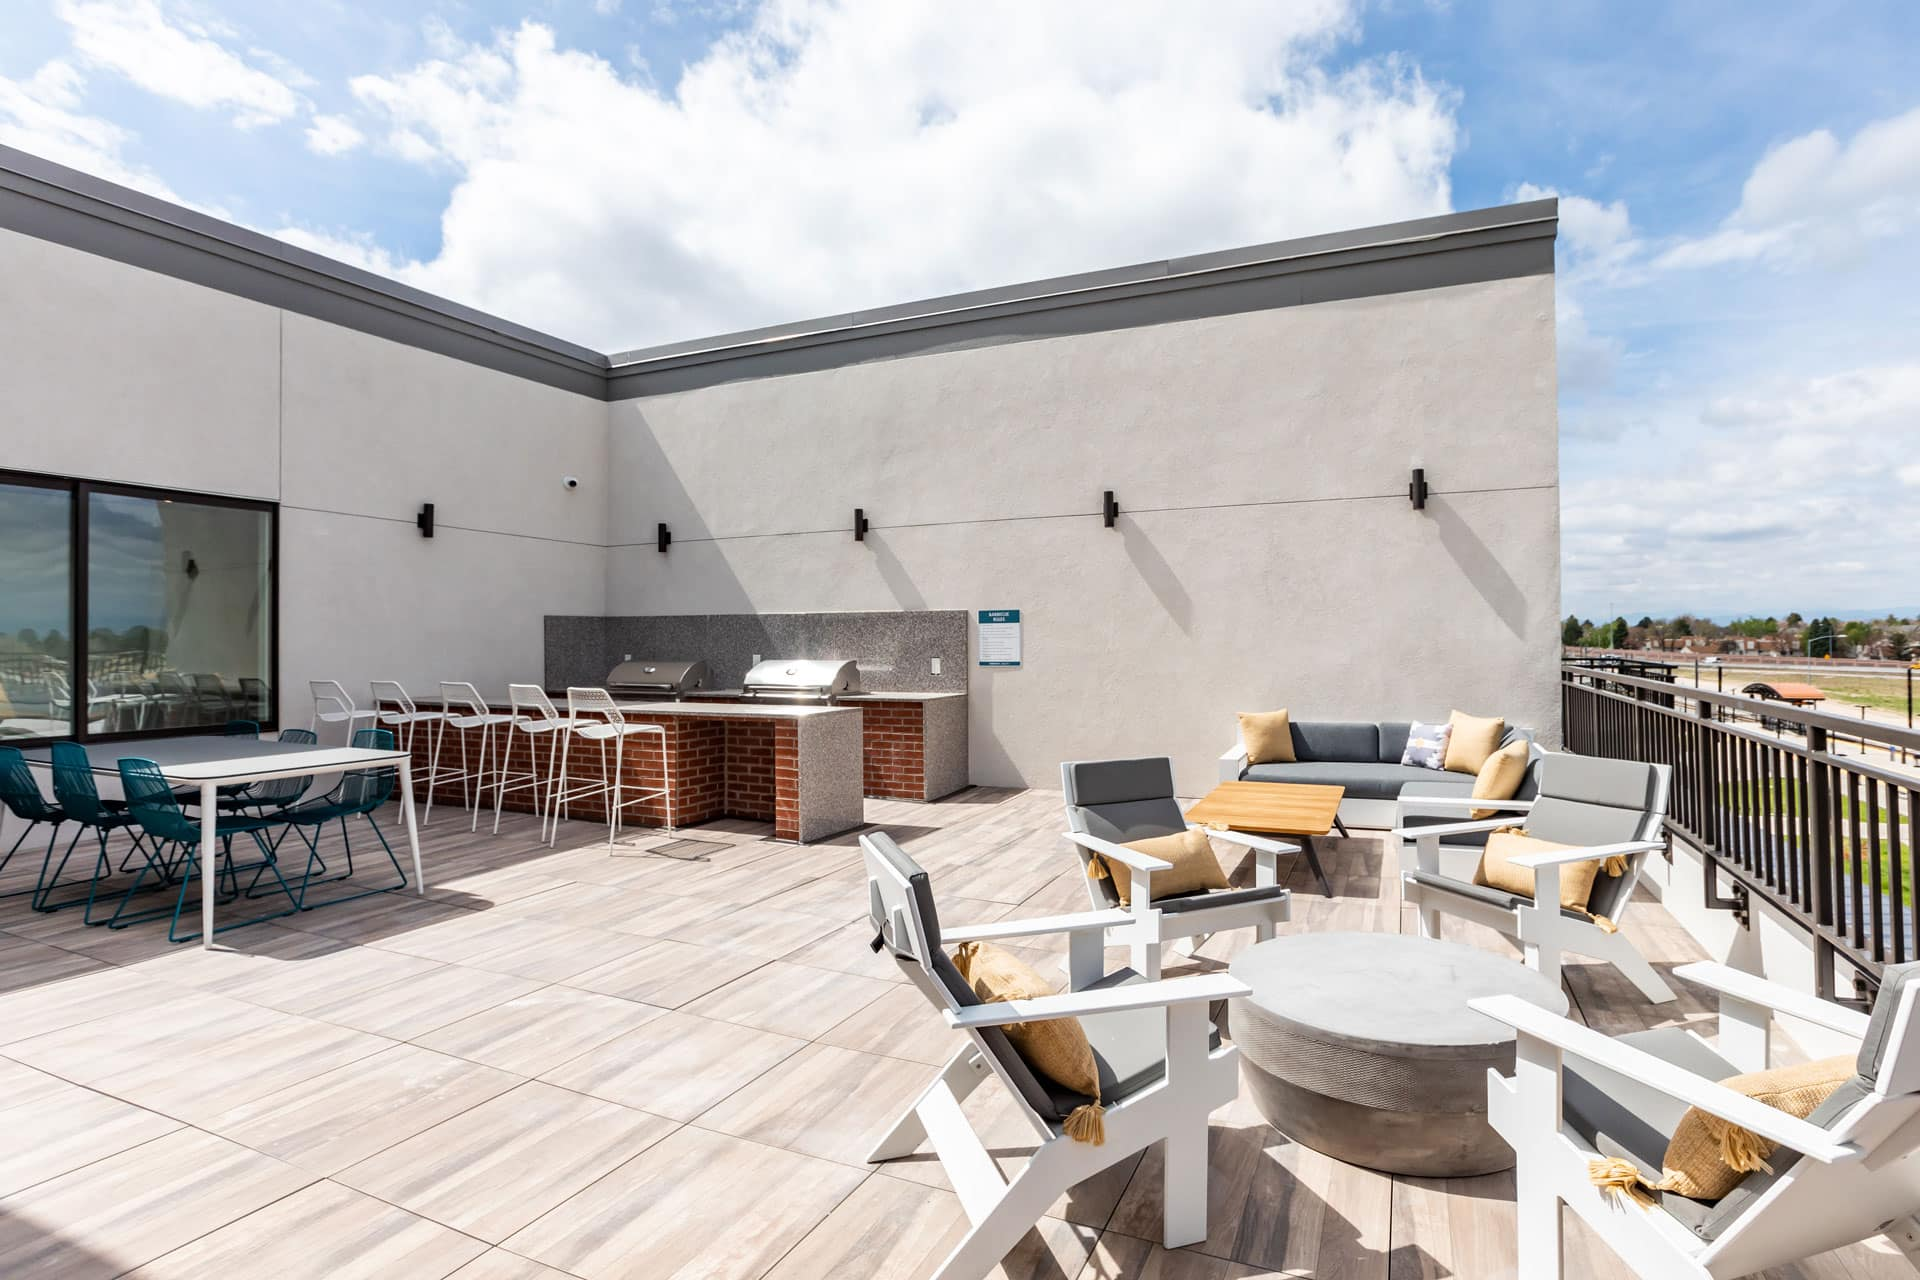 Sky Lounge with Outdoor Fireplace and BBQ Grills